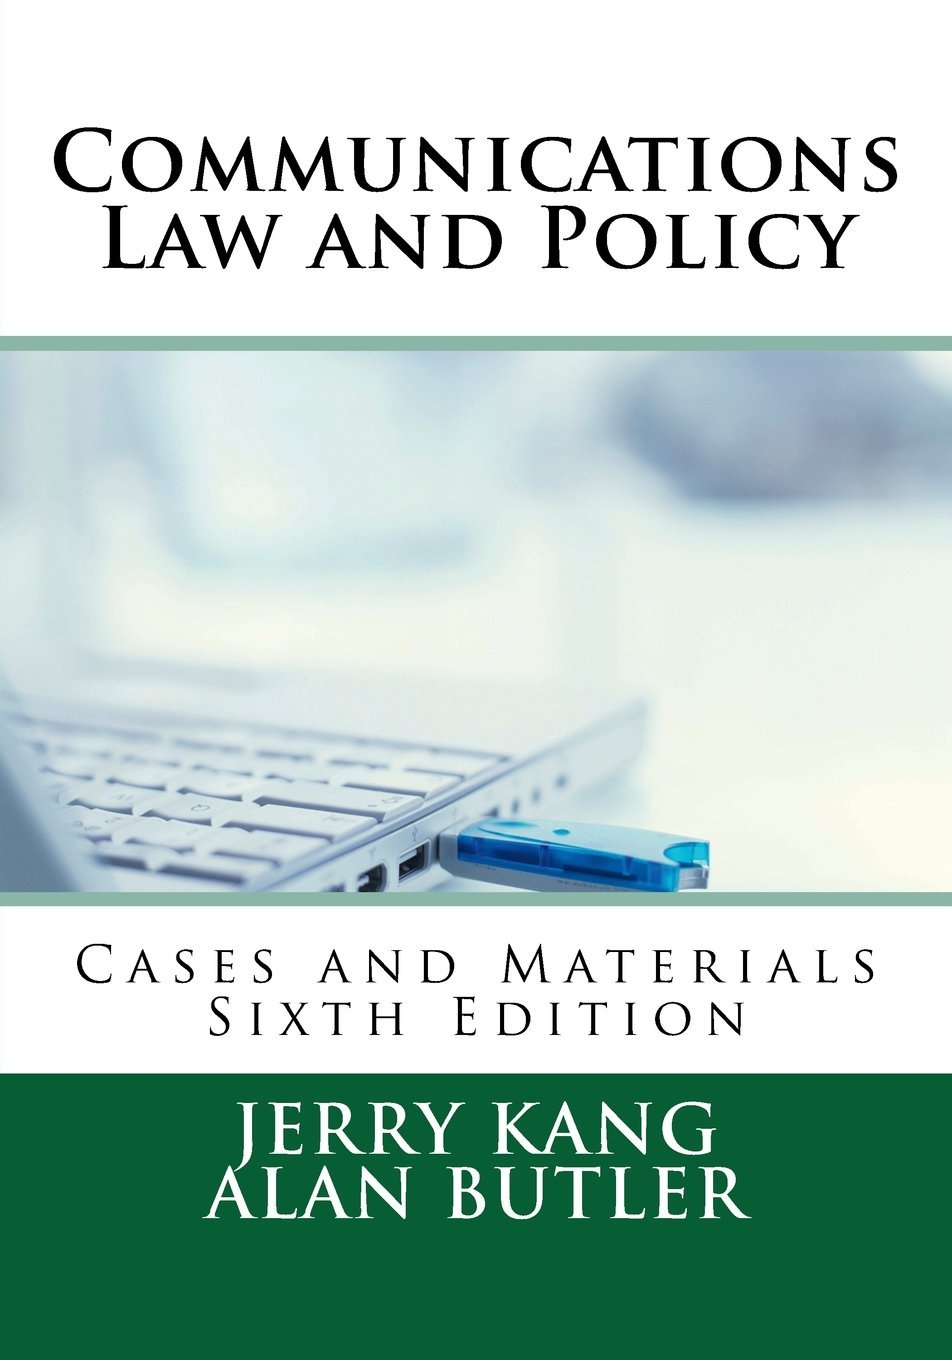 Communications Law and Policy: Cases and Materials Paperback – July 23, 2018 Jerry Kang Alan Butler Direct Injection Press 0997850221